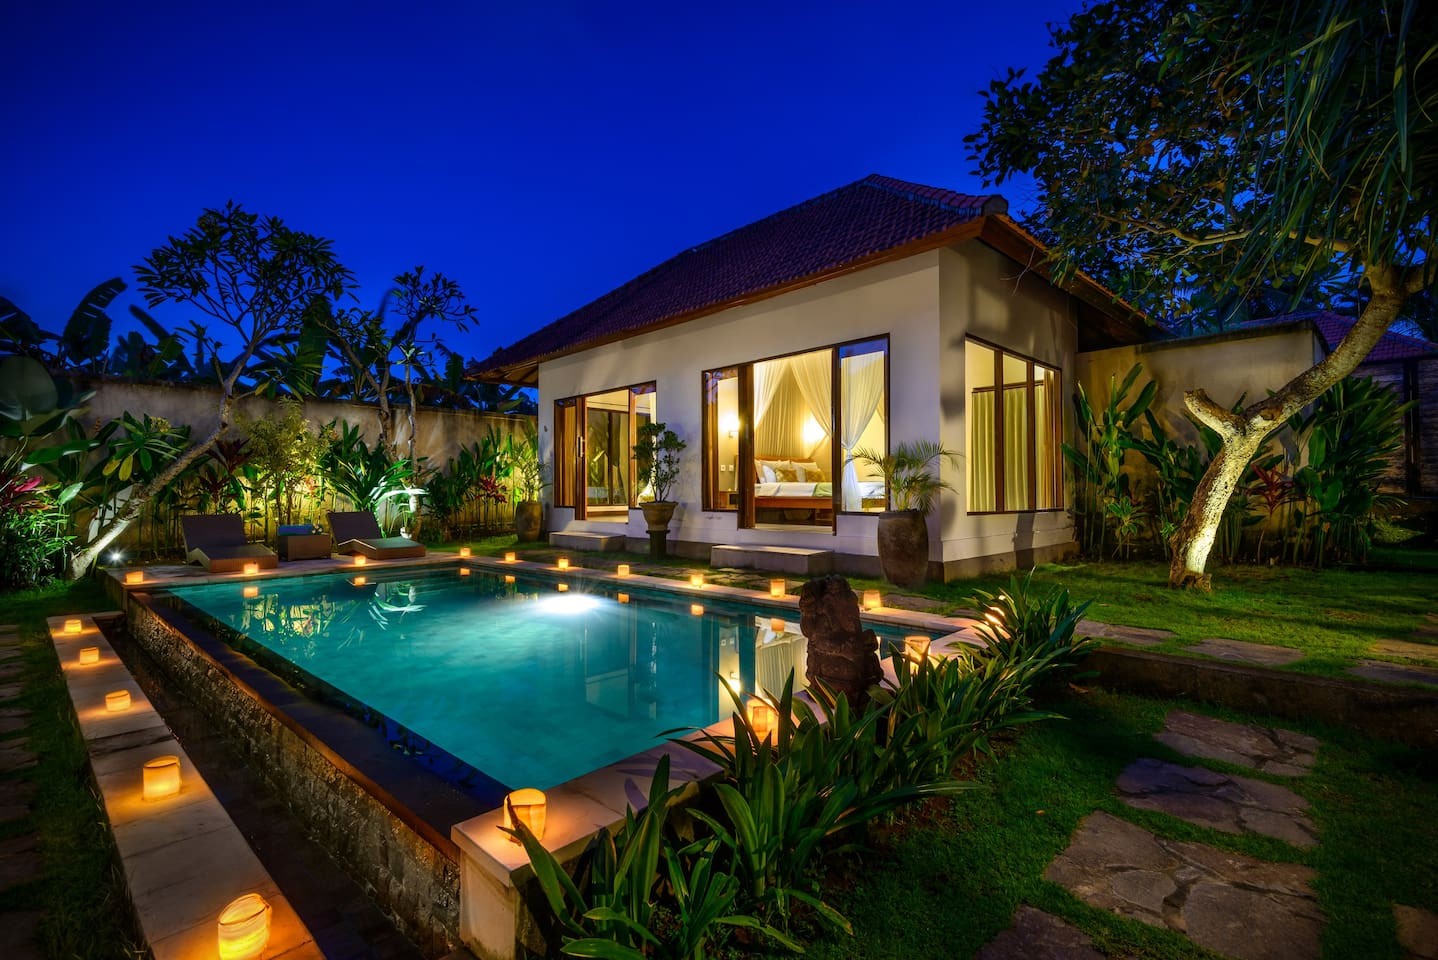 Swimming pool and bedroom by night